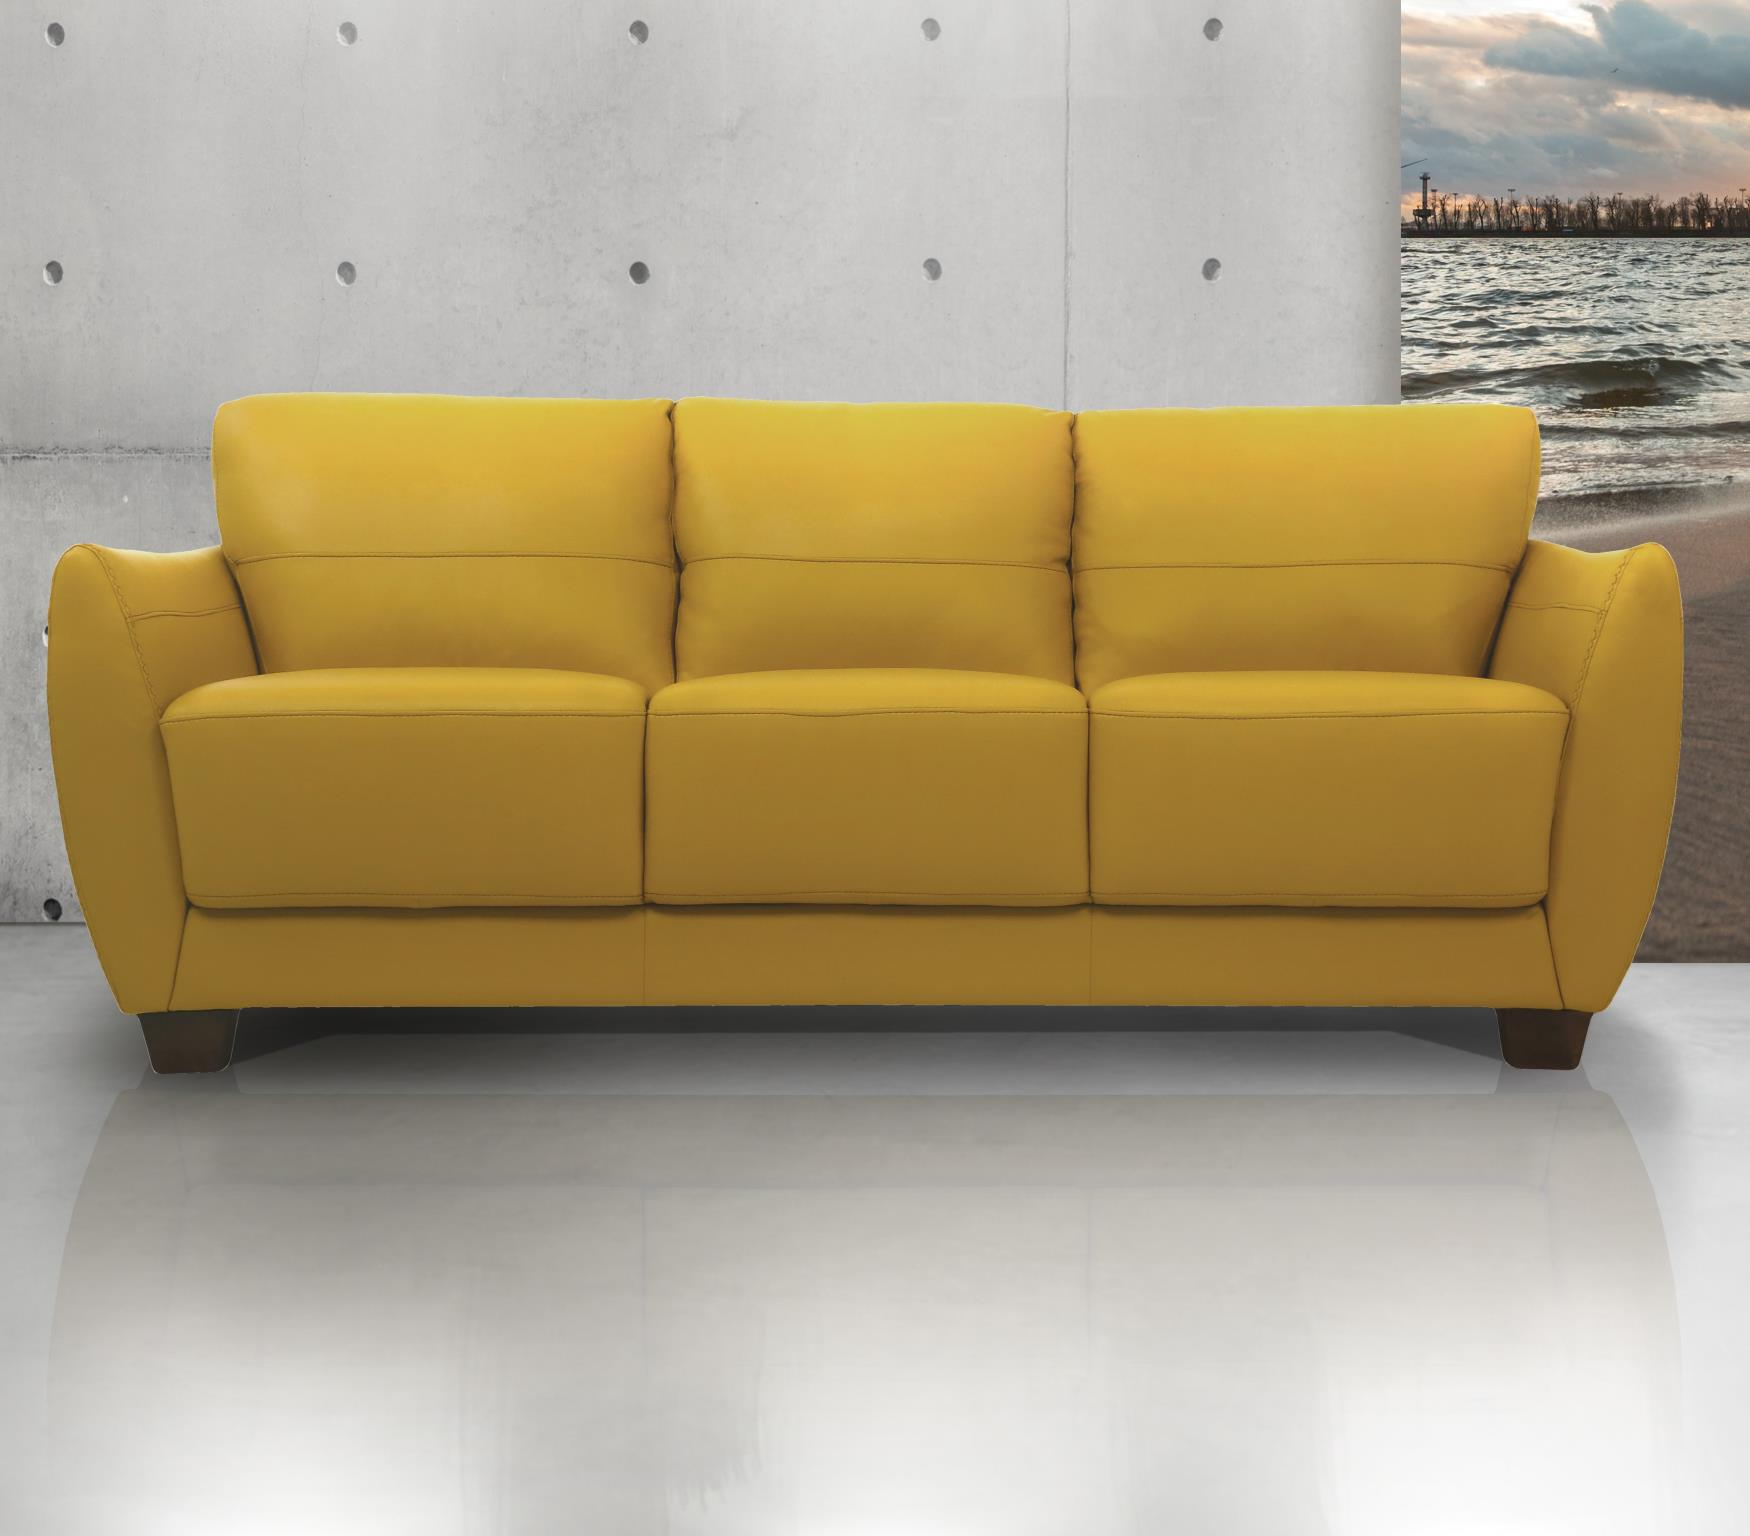 Valeria Contemporary Leather Sofa